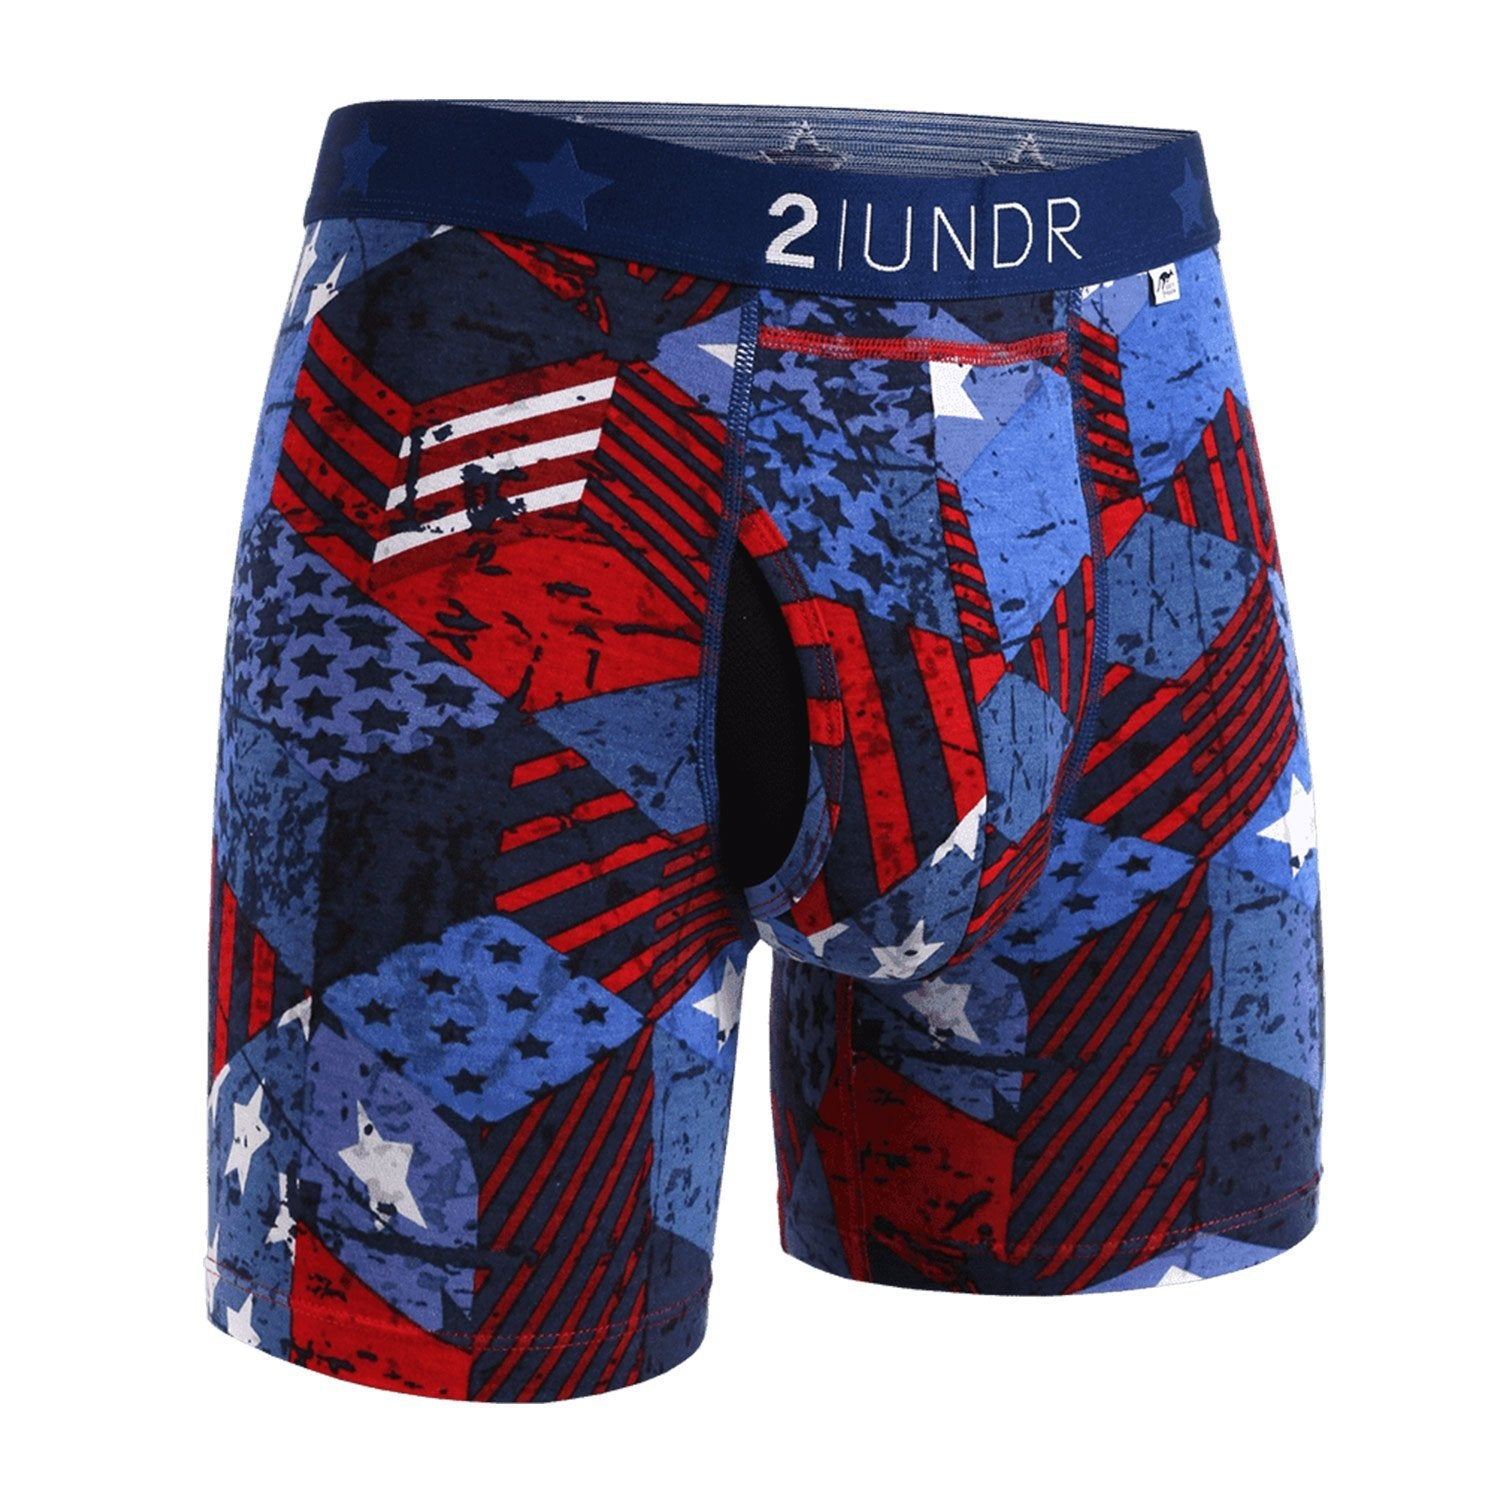 2 UNDR Swing Shift Boxer Brief - Freedom Underwear 2UNDR